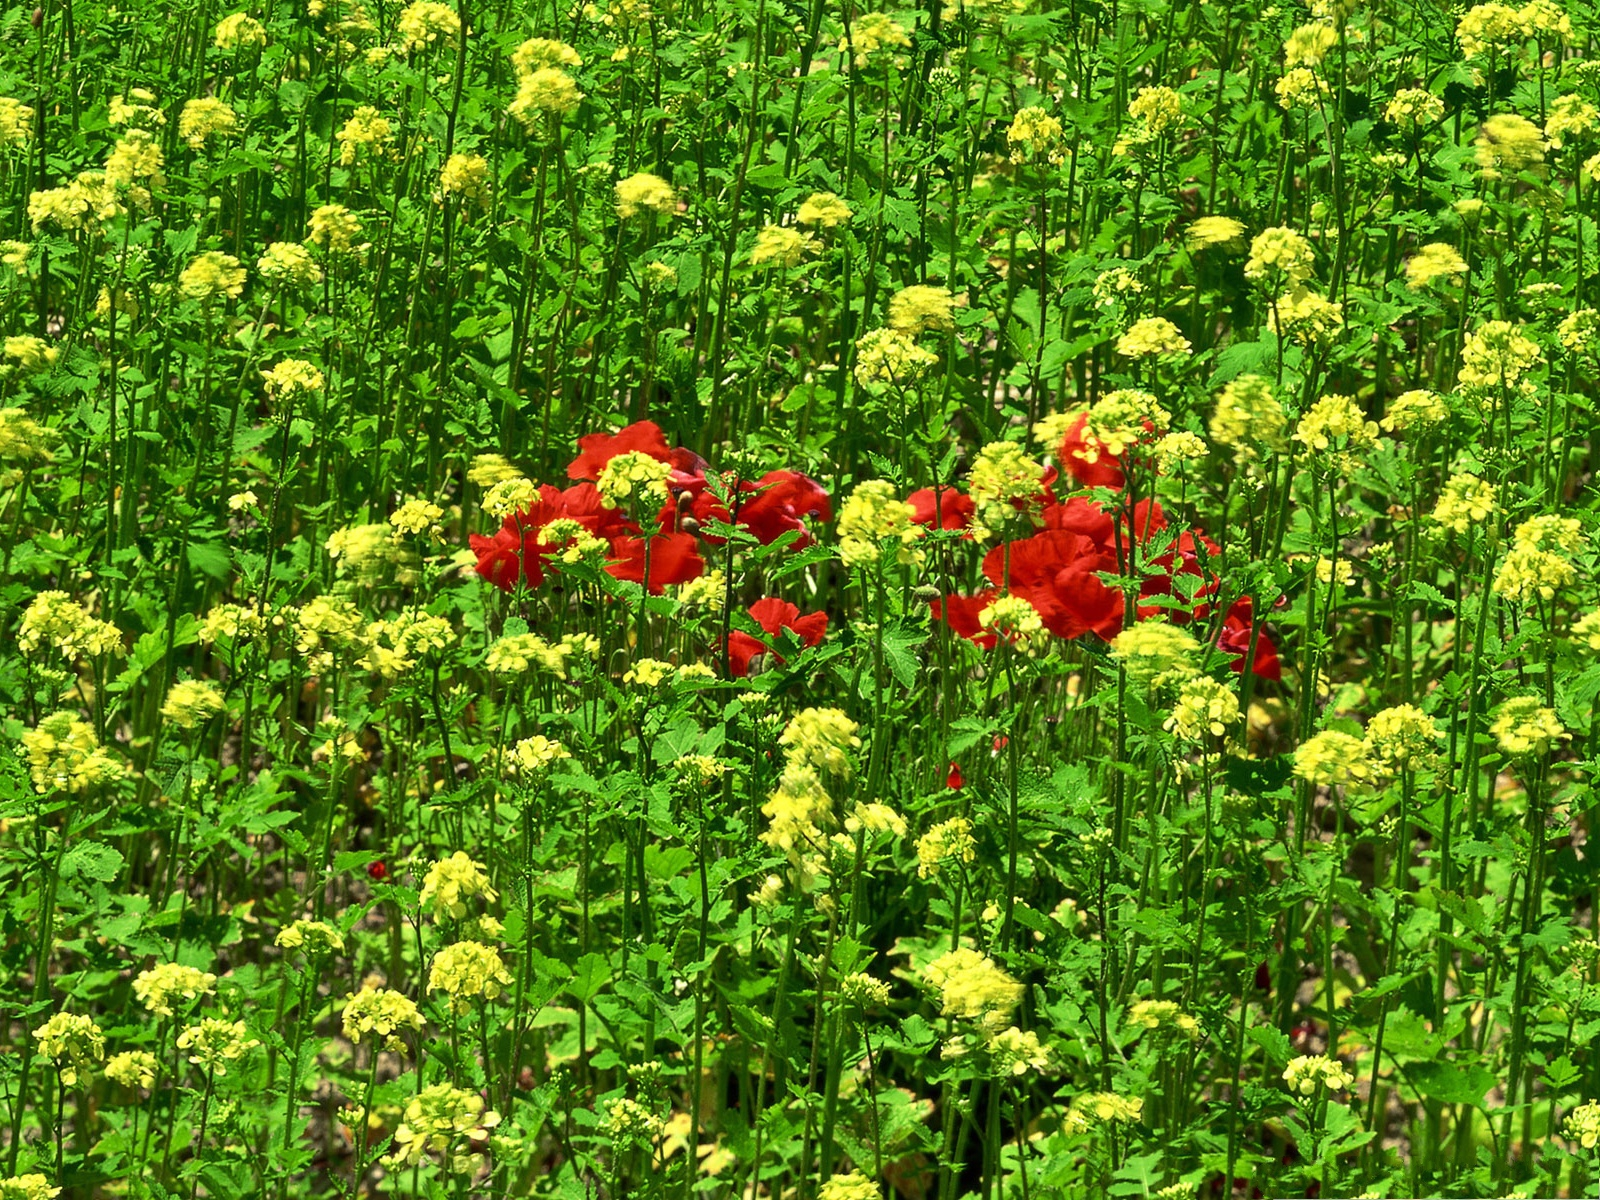 click to free download the wallpaper--Flowers Field Picture, Red Flowers Among Green Field, What a Contrast! 1600X1200 free wallpaper download